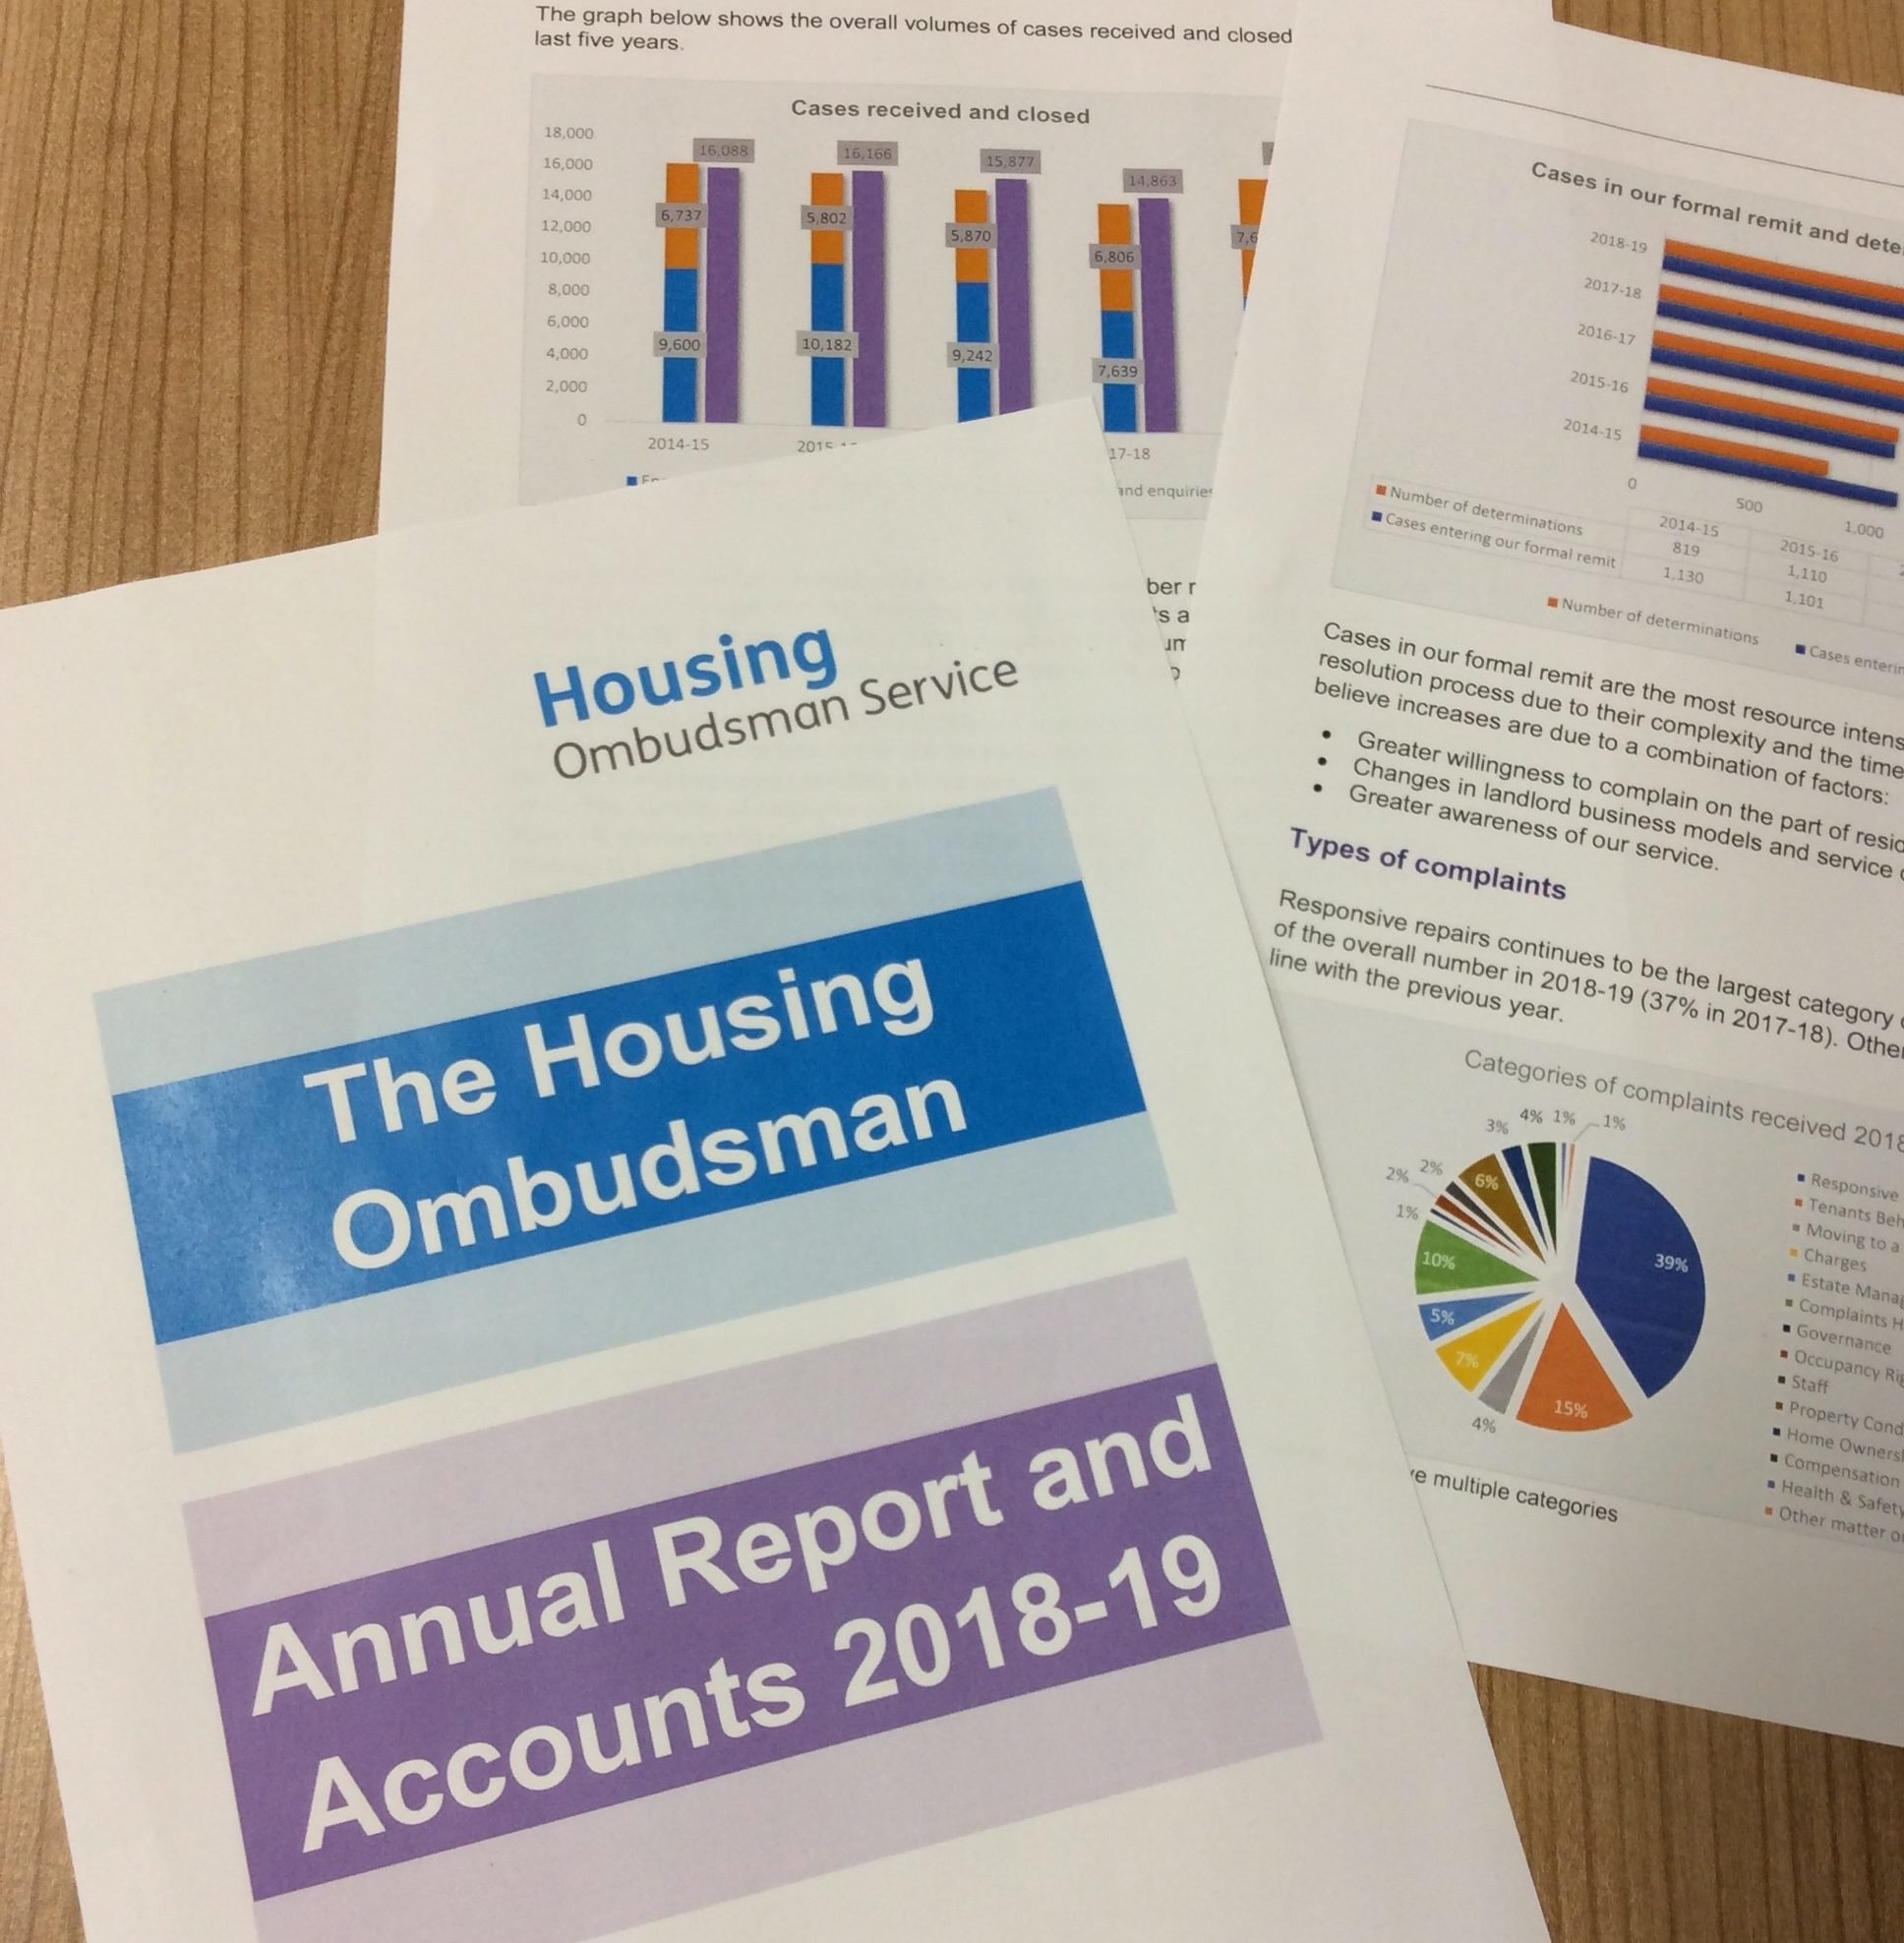 Housing Ombudsman Annual Report 2018-19 image